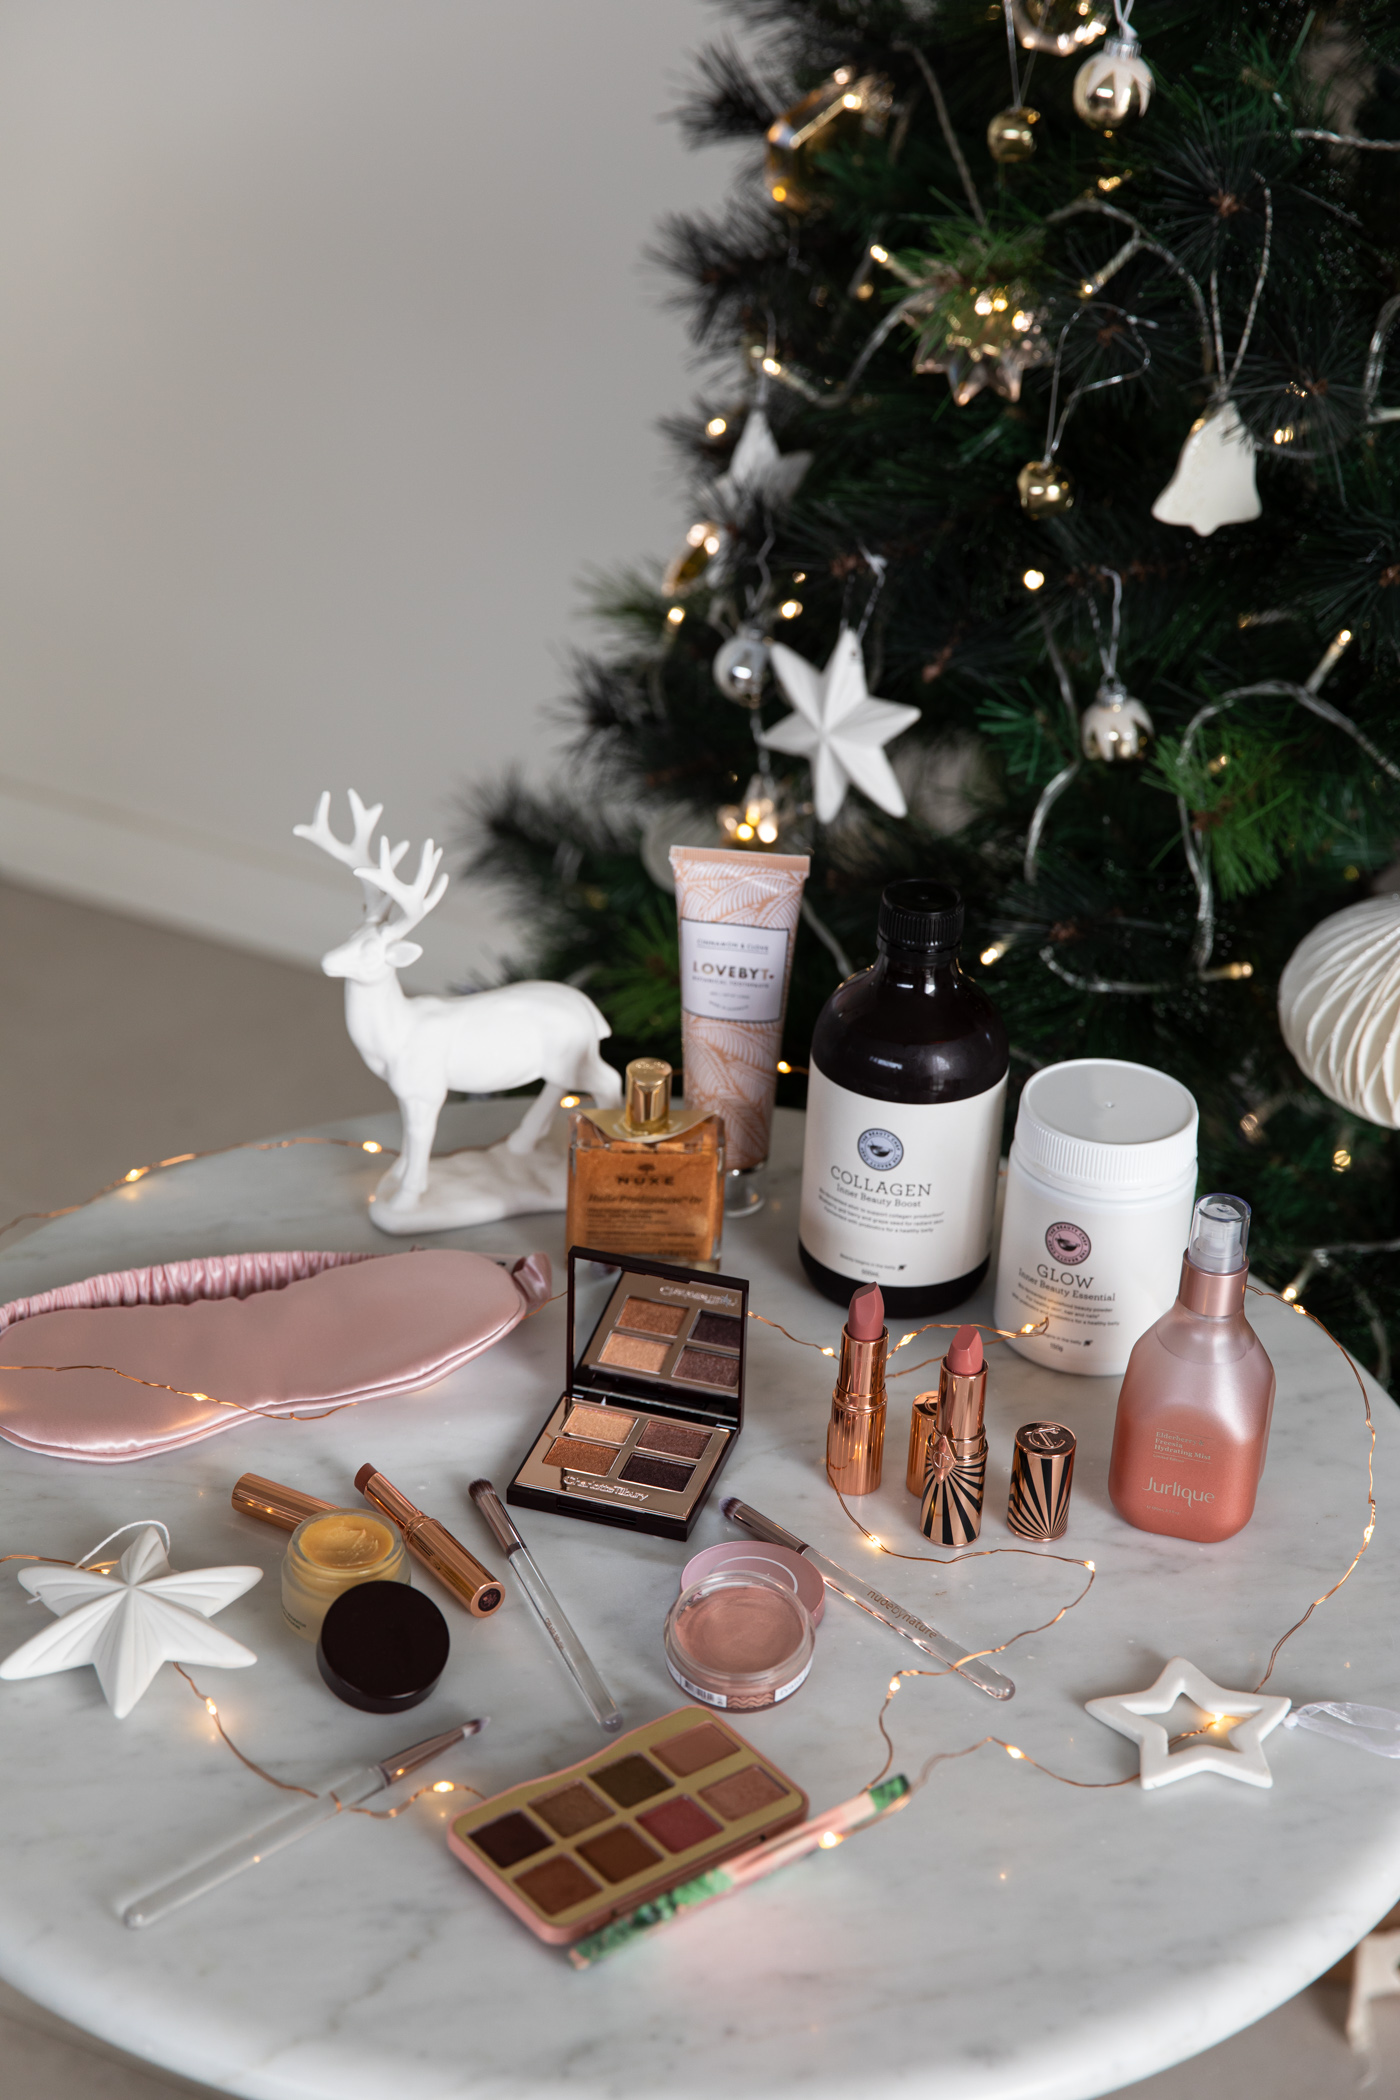 Beauty gift ideas for the women on your Christmas Gift list